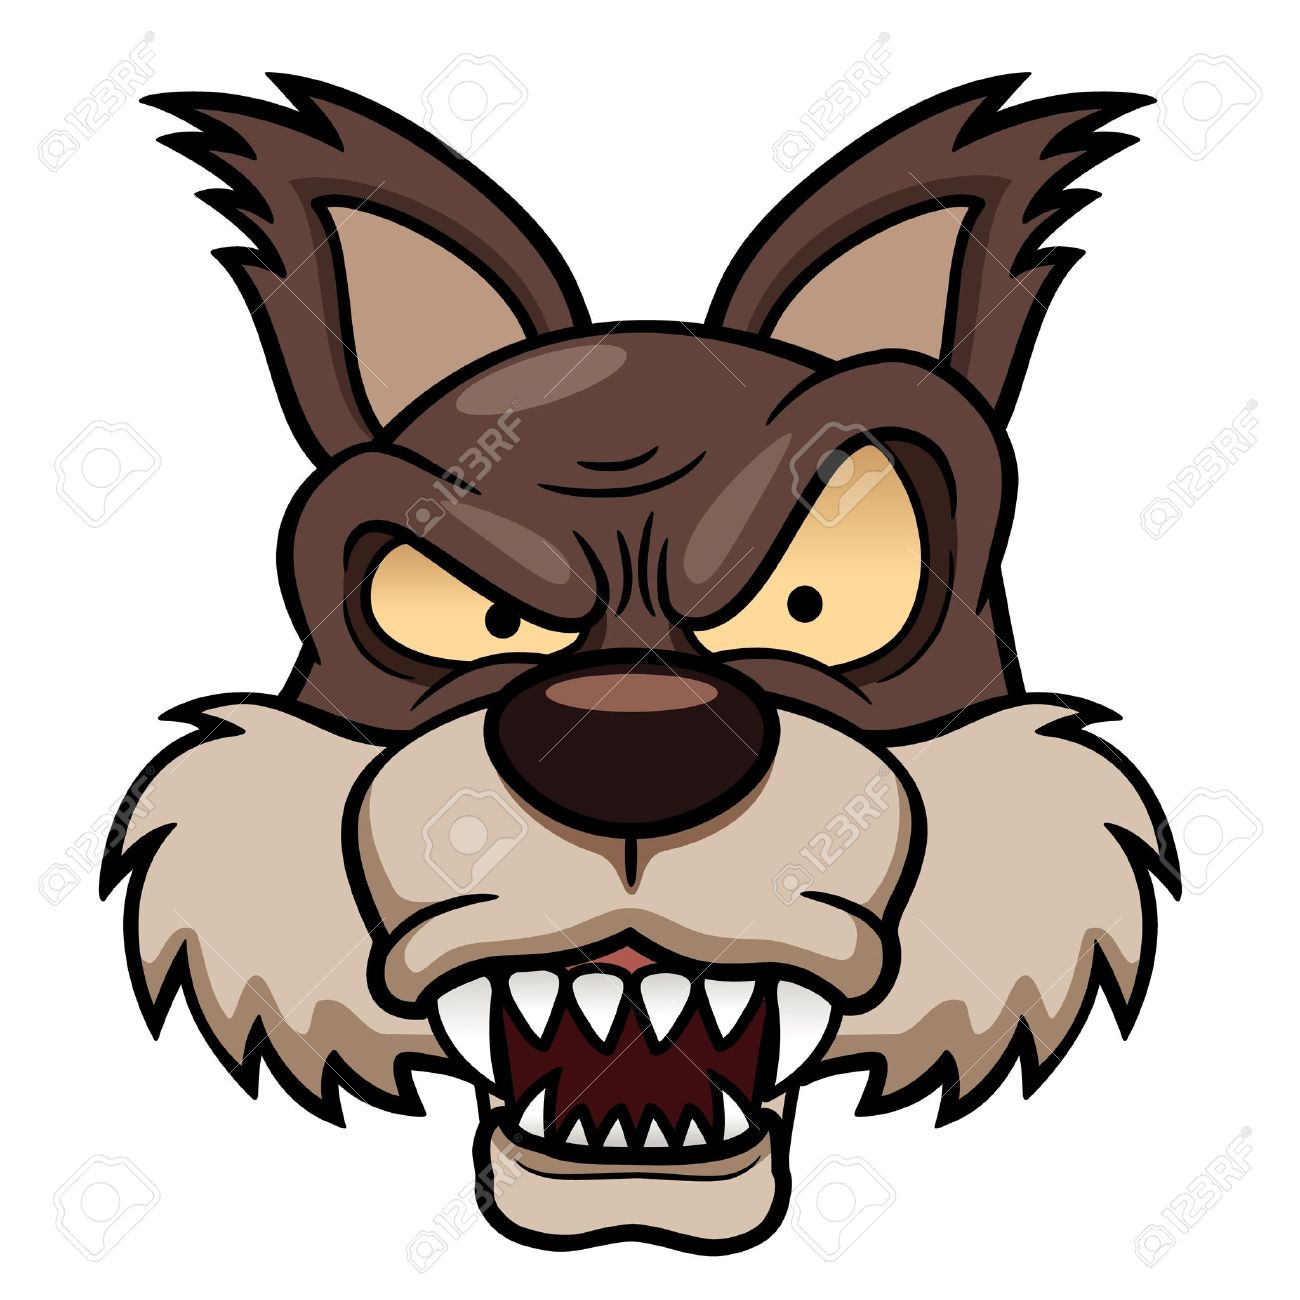 1300x1300 9,681 Wolf Cartoon Stock Vector Illustration And Royalty Free Wolf